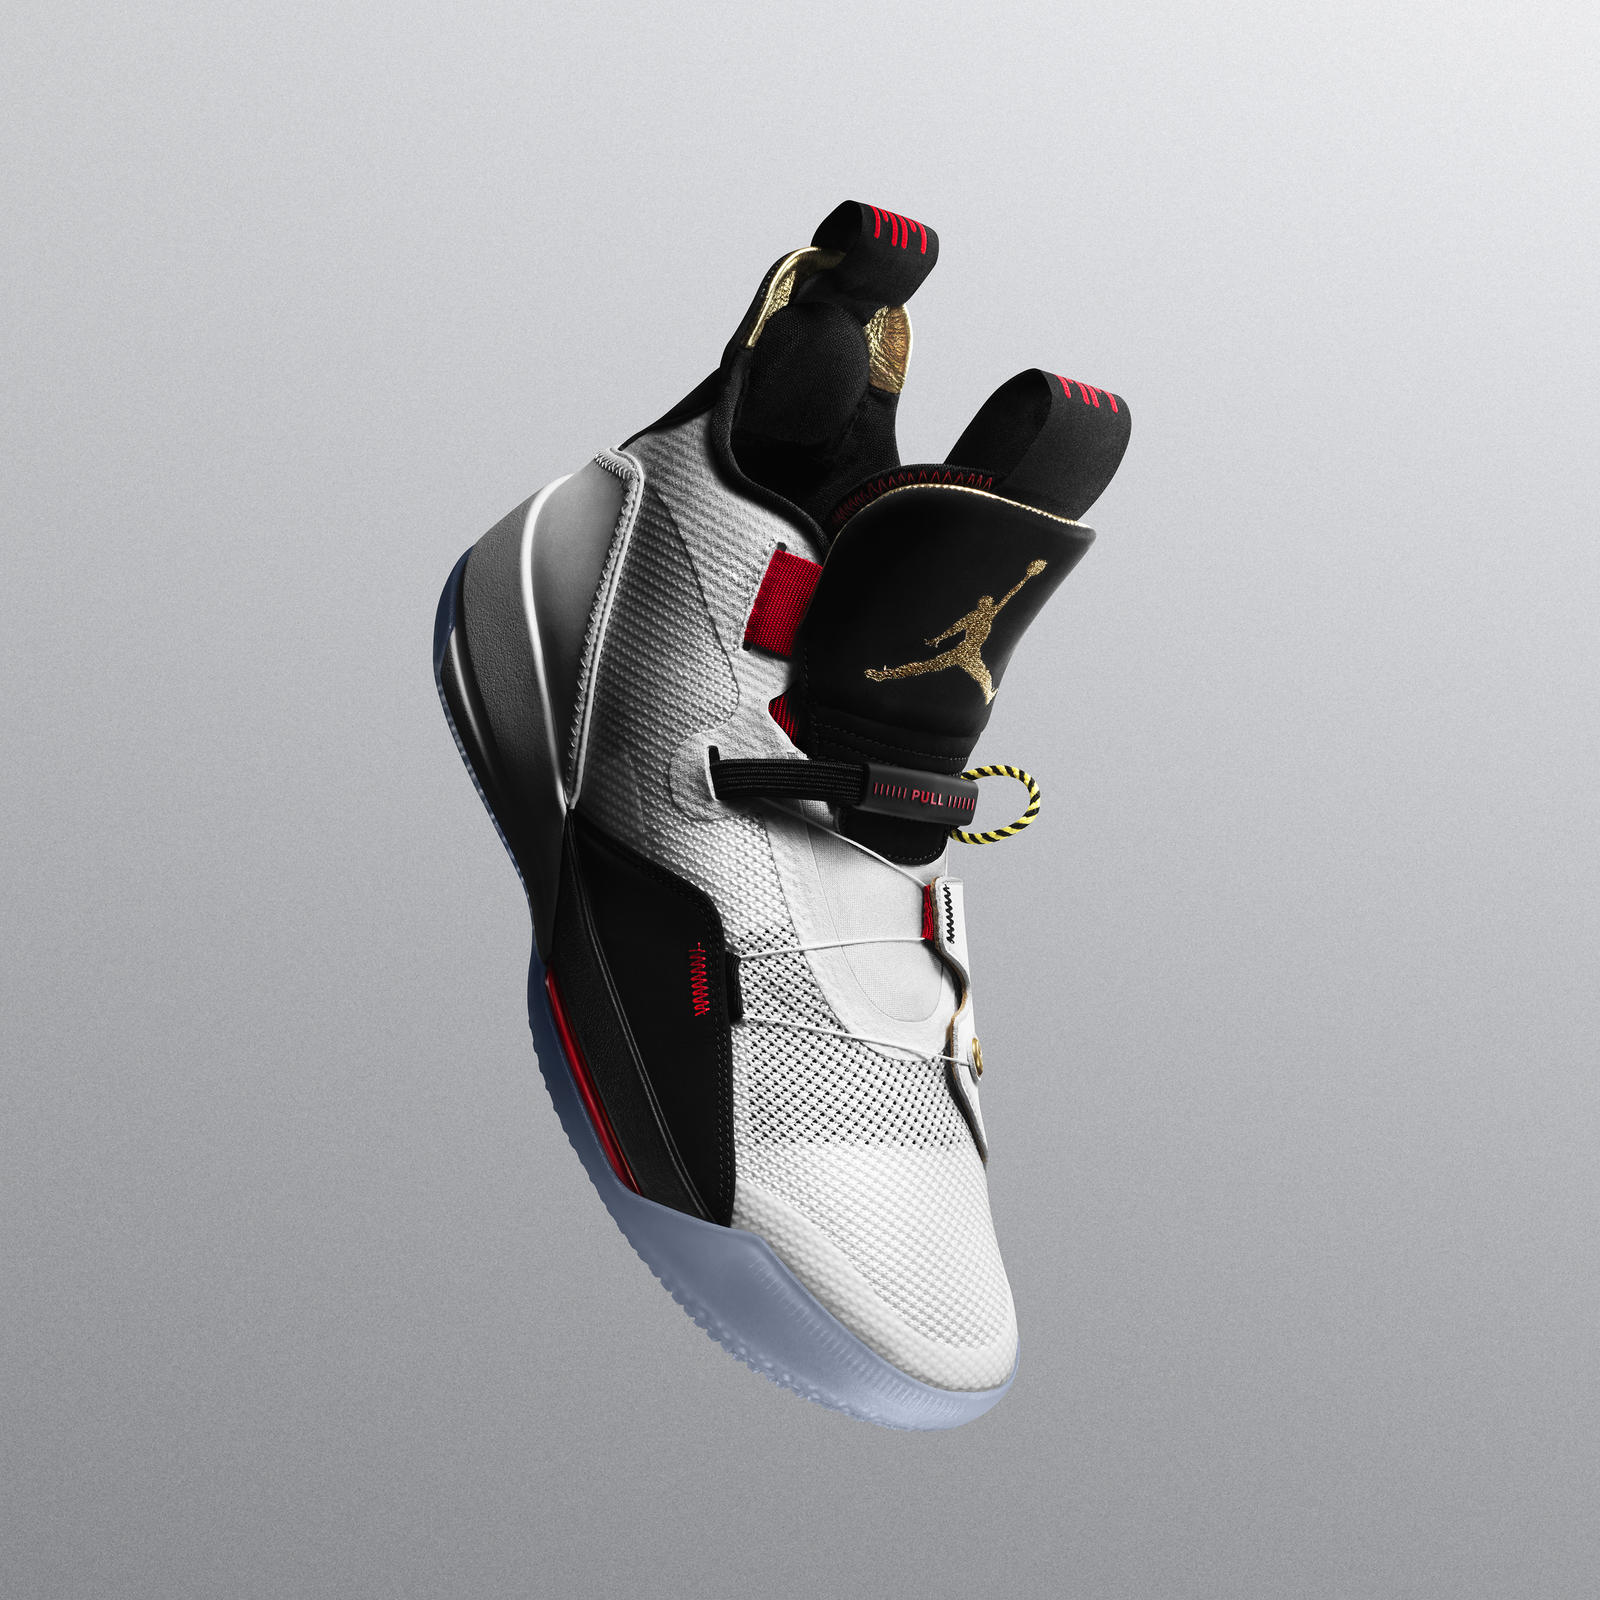 Lock-In and Prepare to Fly with the Air Jordan XXXIII  31